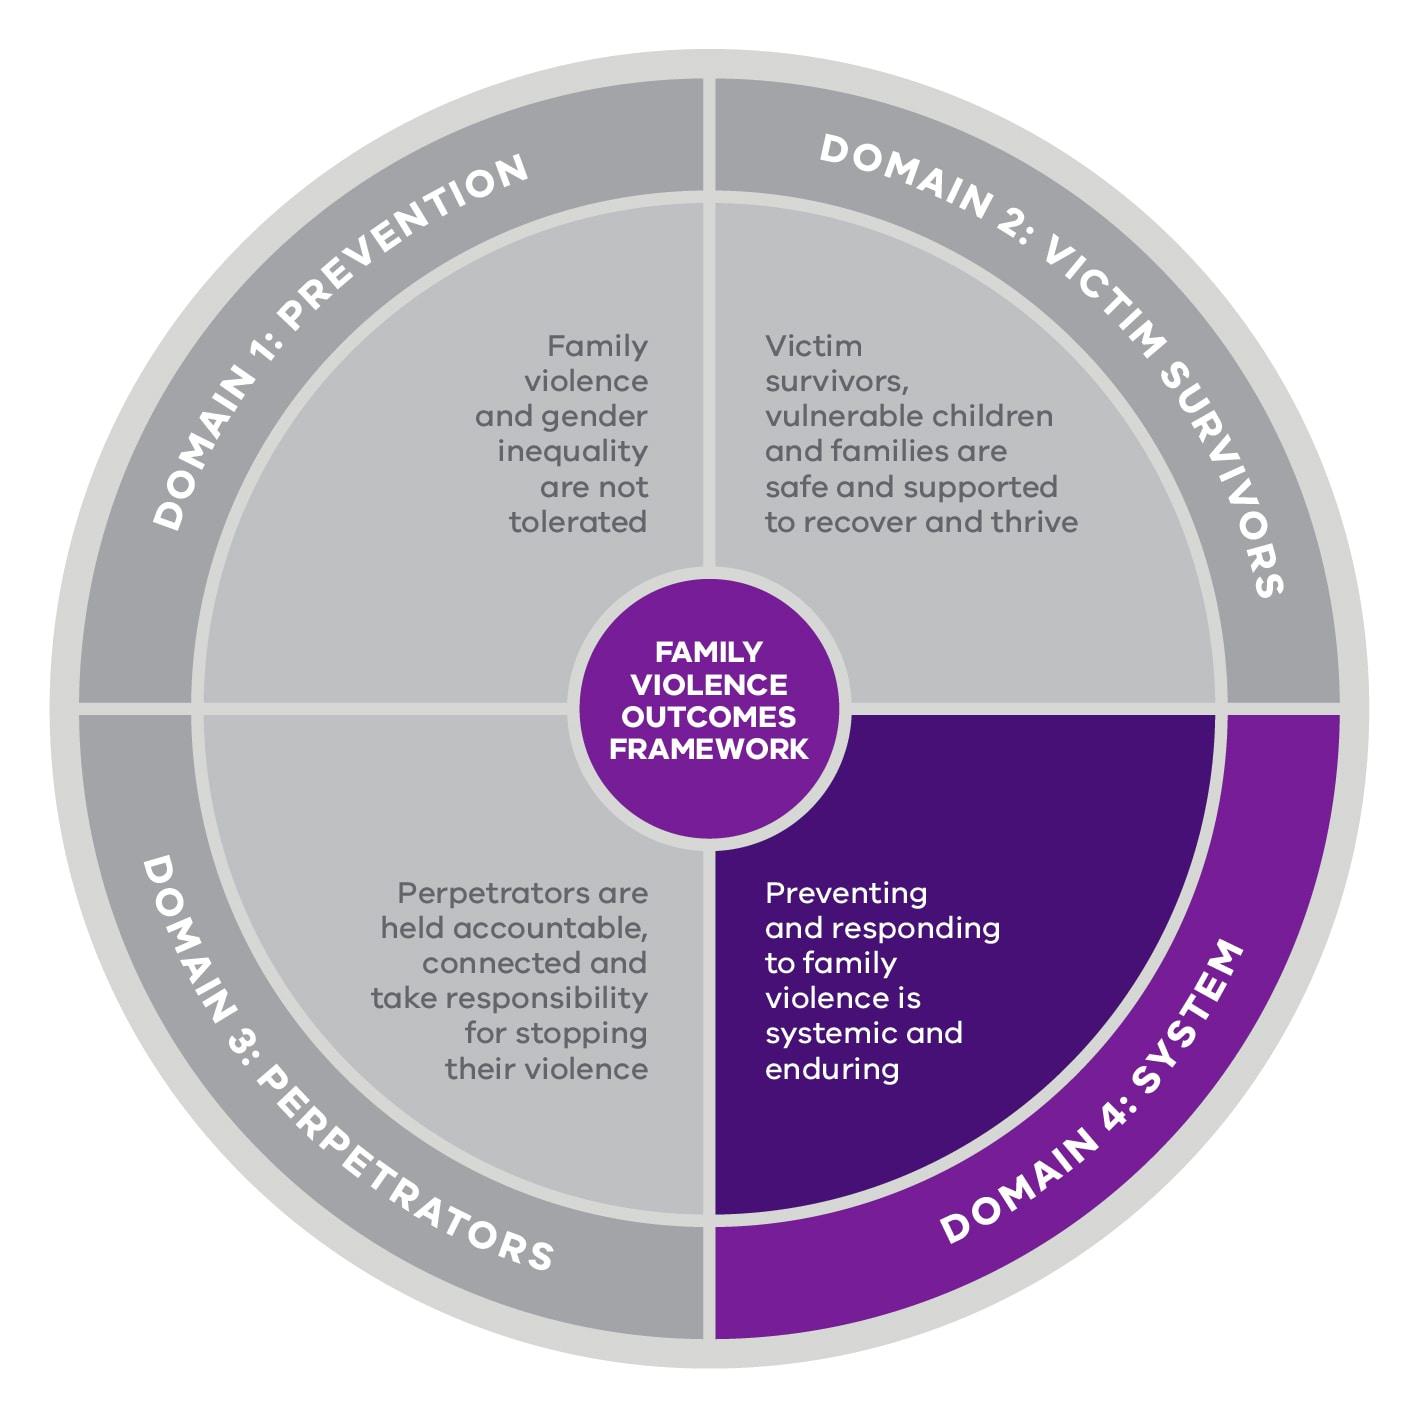 Domain 4, Preventing and responding to family violence is systemic and enduring